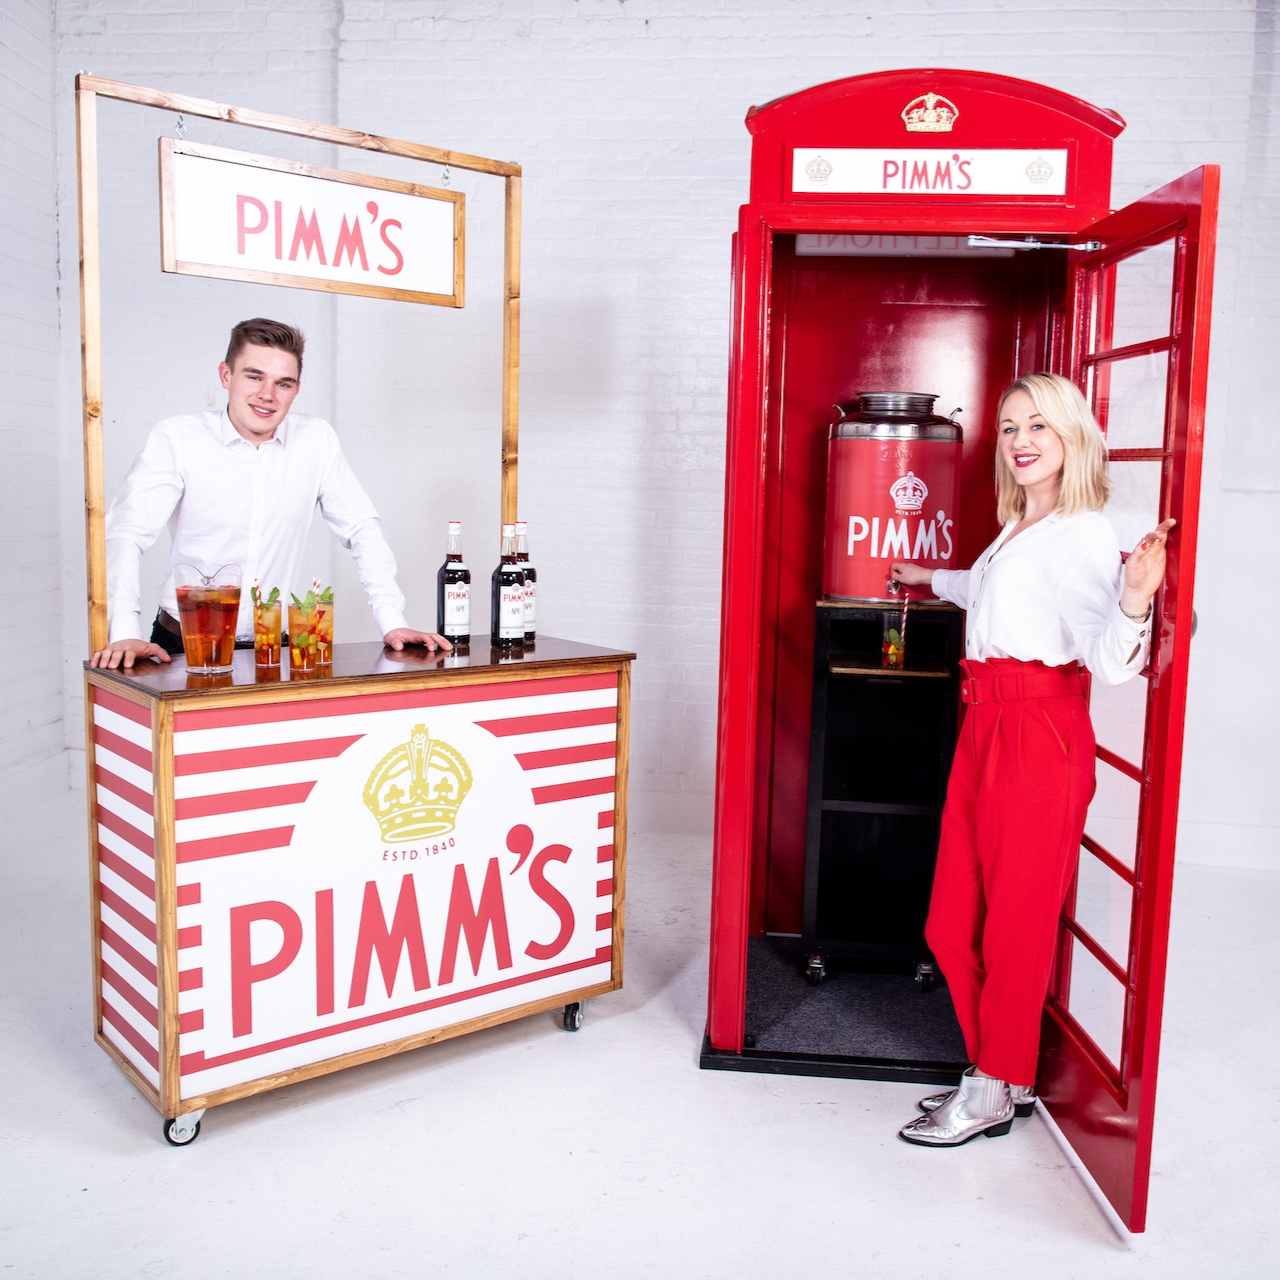 Pimms Phone box and branded bar with bar staff and drinks package